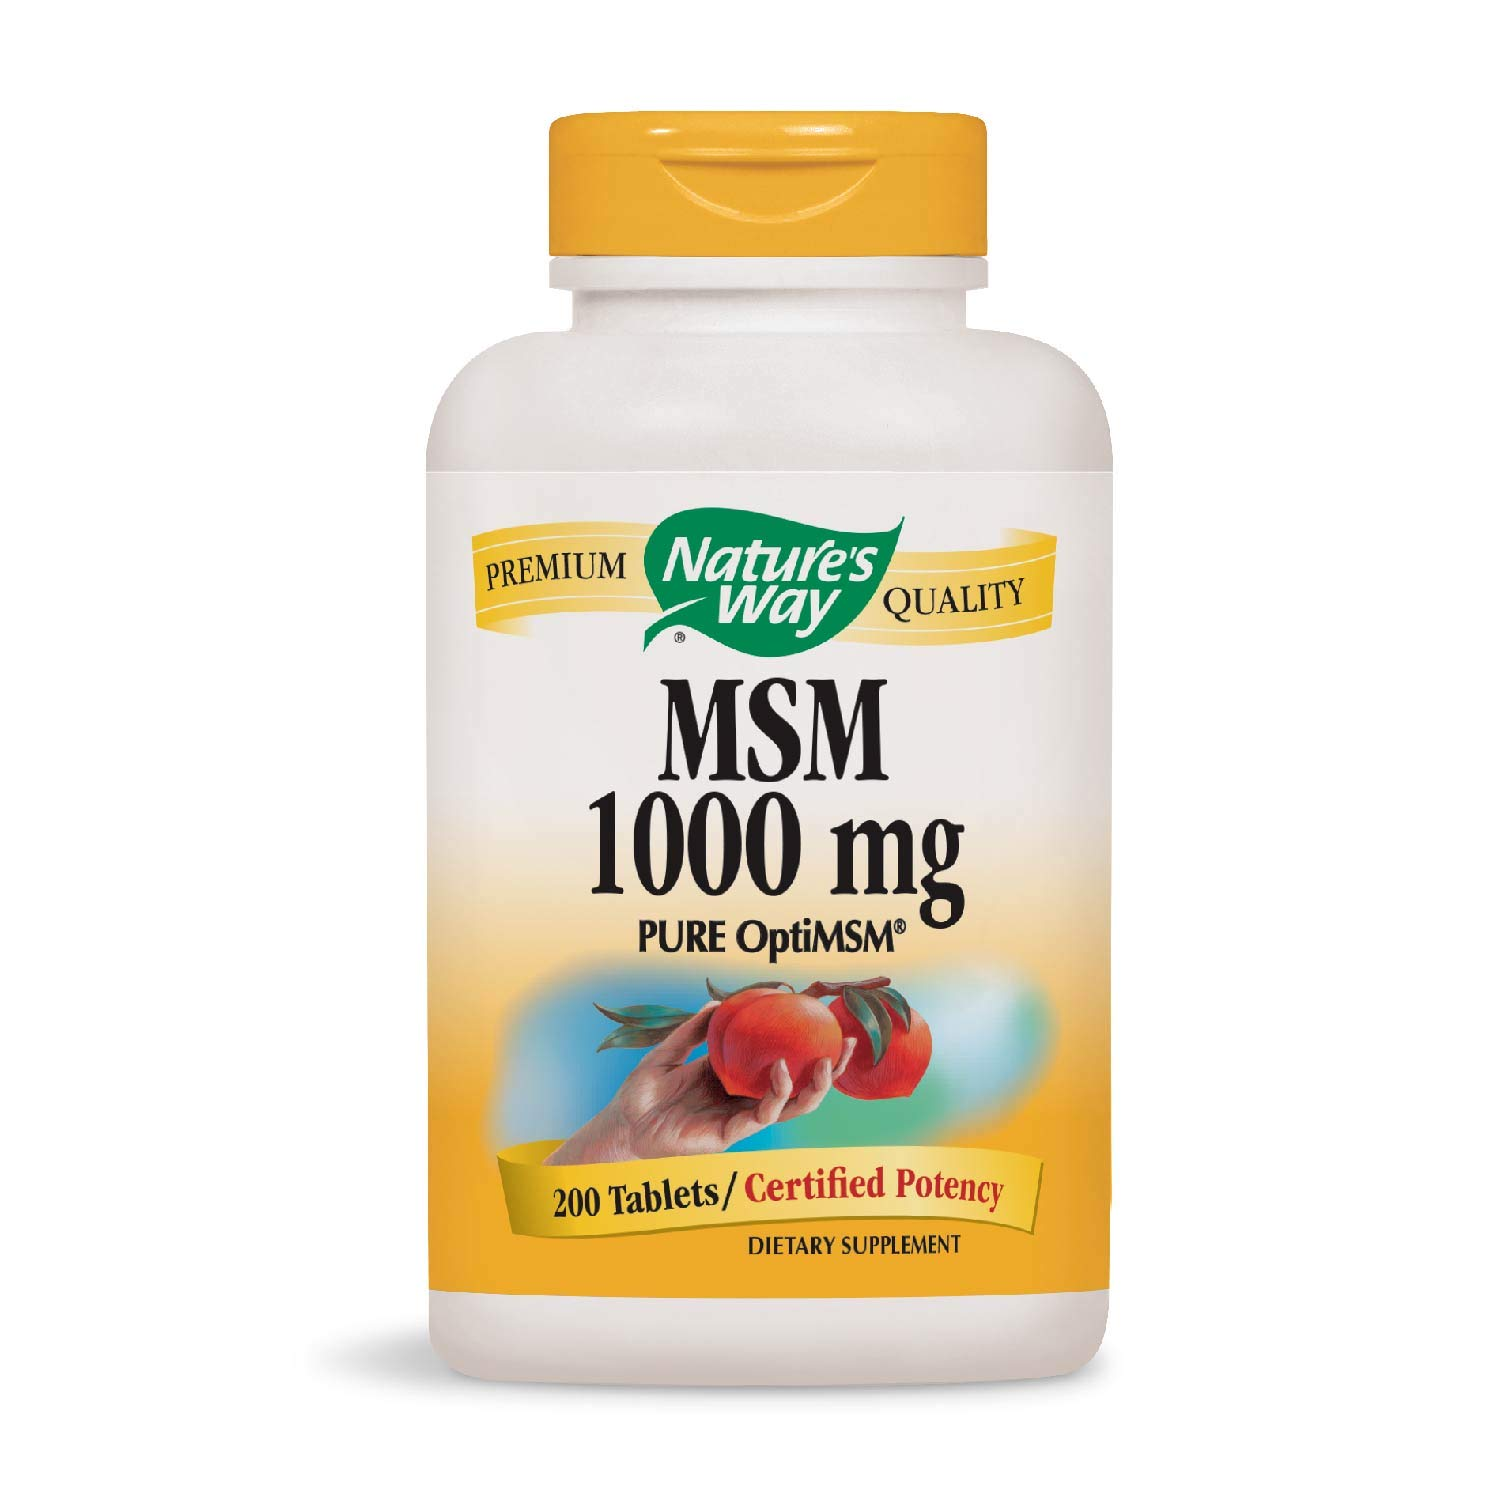 Nature's Way MSM 1000mg, 200 Tablets